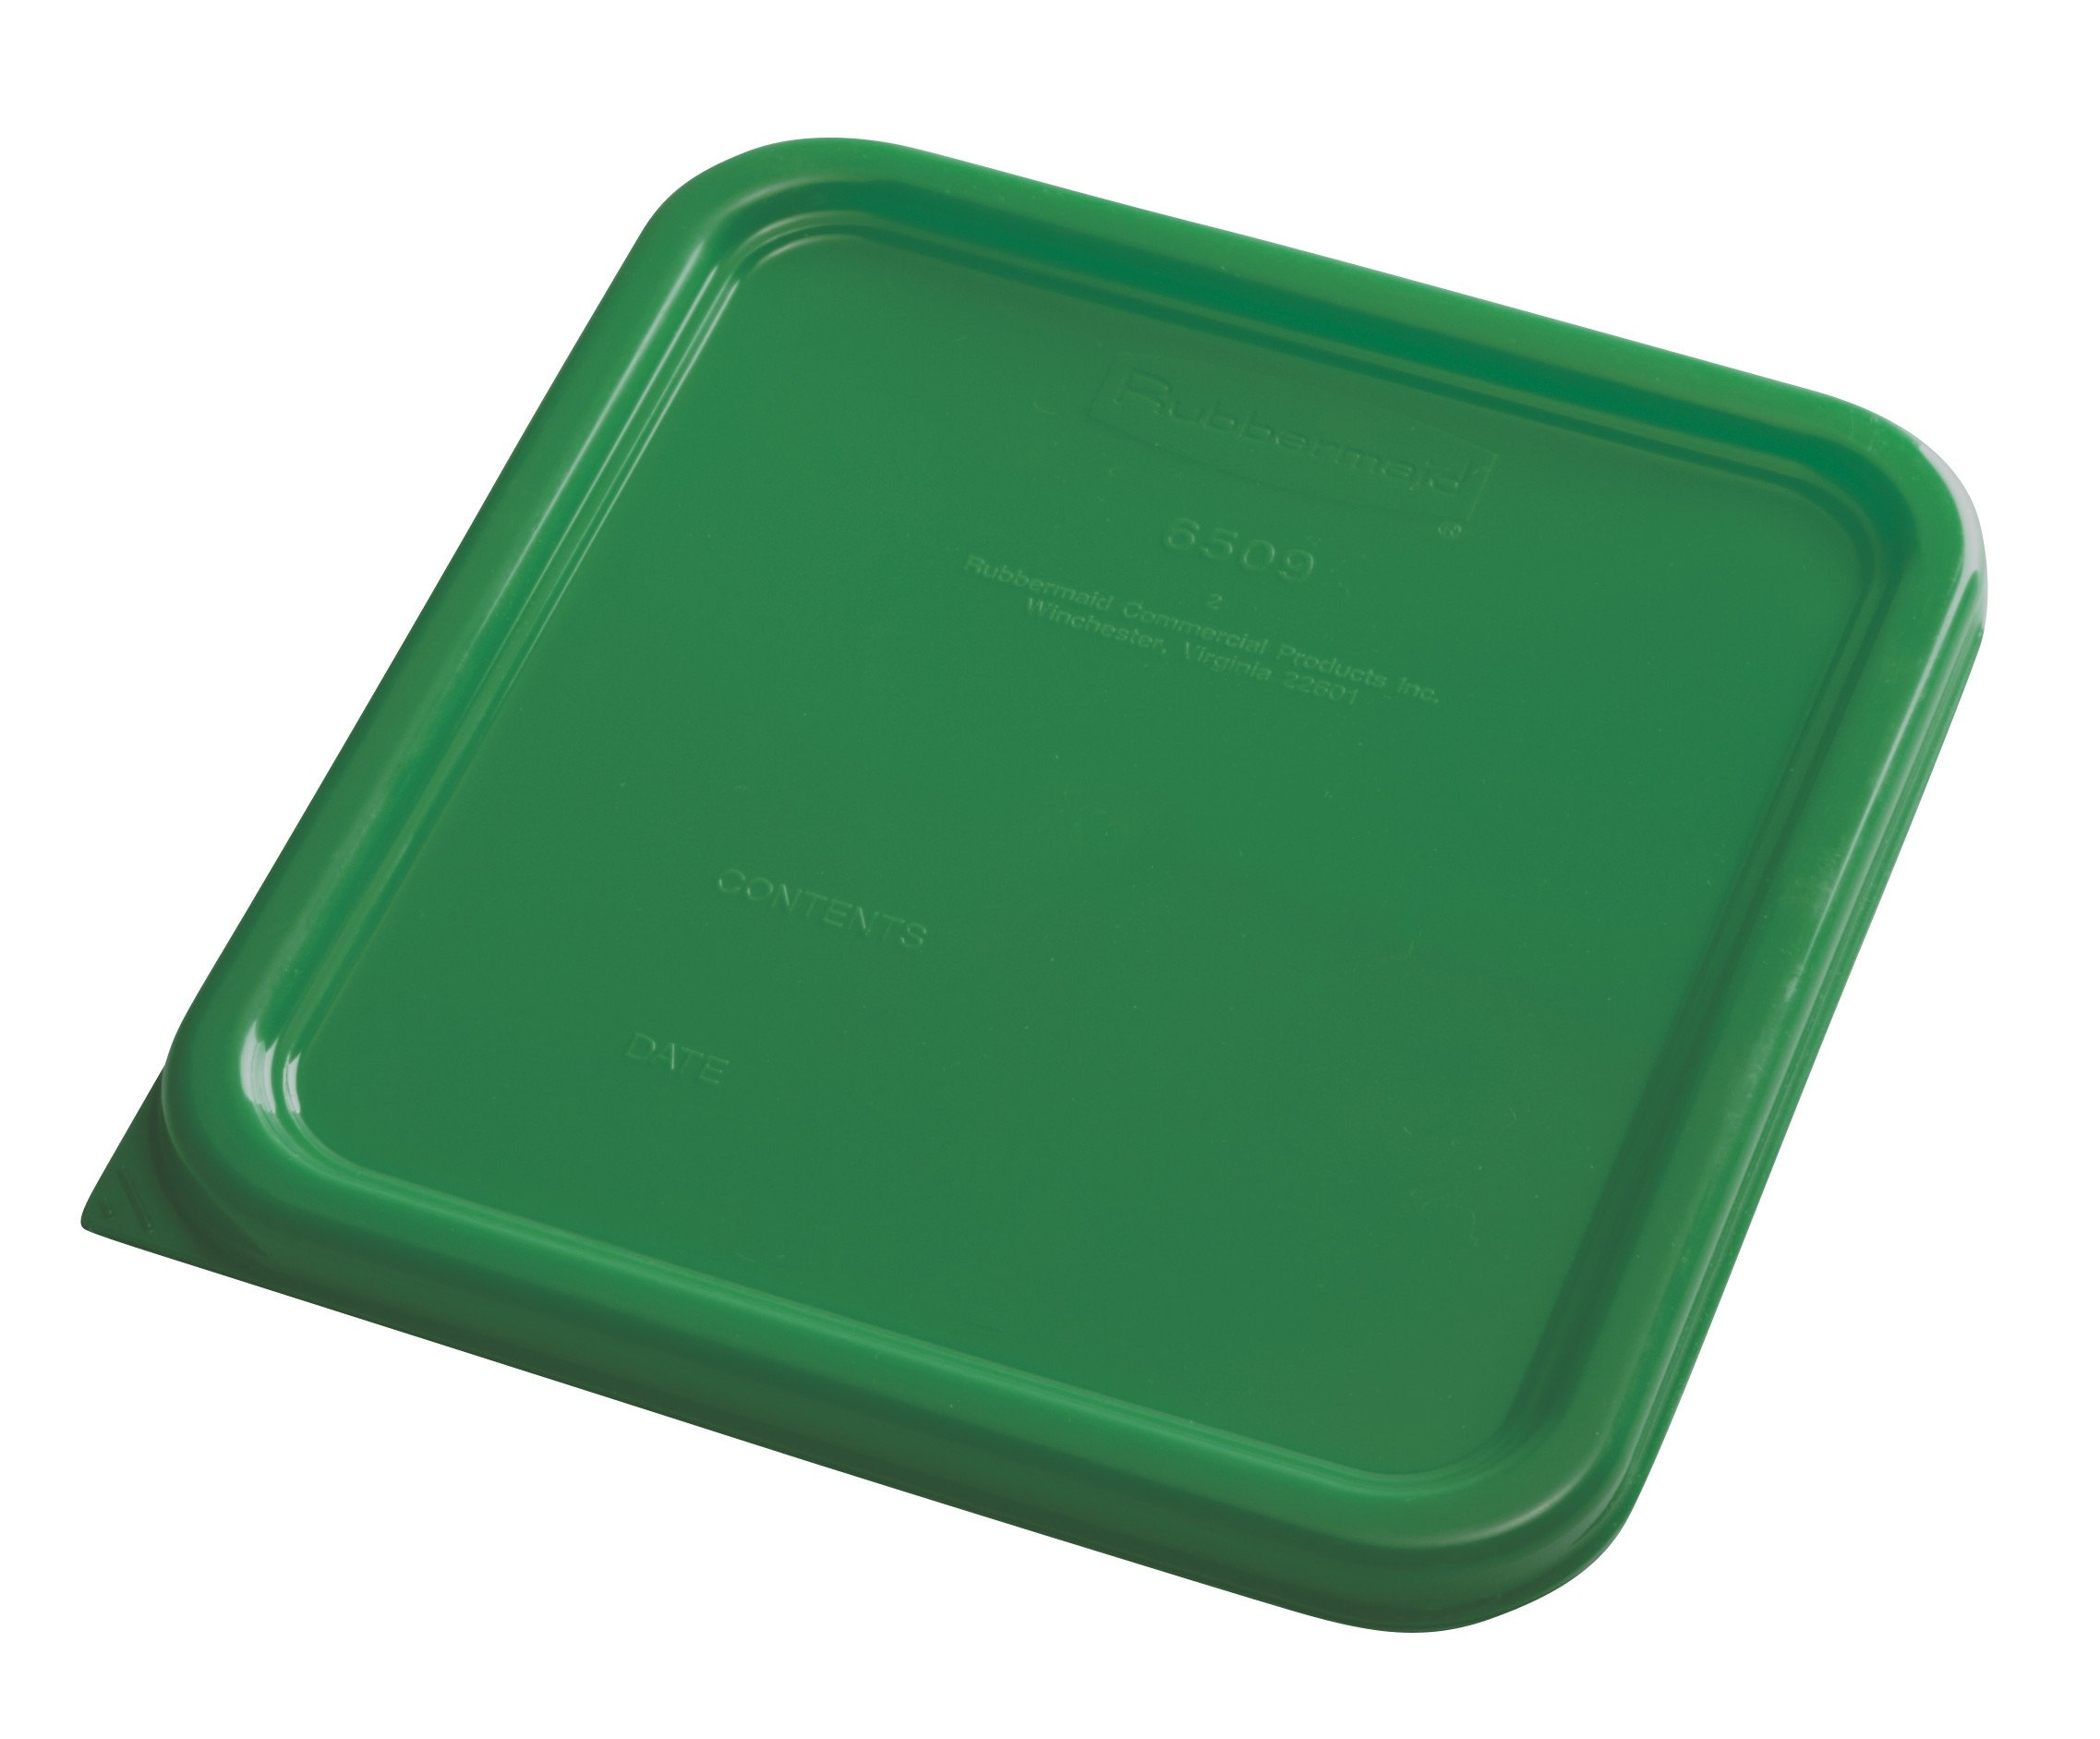 Rubbermaid Commercial Products 1980301 Rubbermaid Commercial Plastic Food Storage Container Lid, Square, Green, 4 and 8 Quart by Rubbermaid Commercial Products